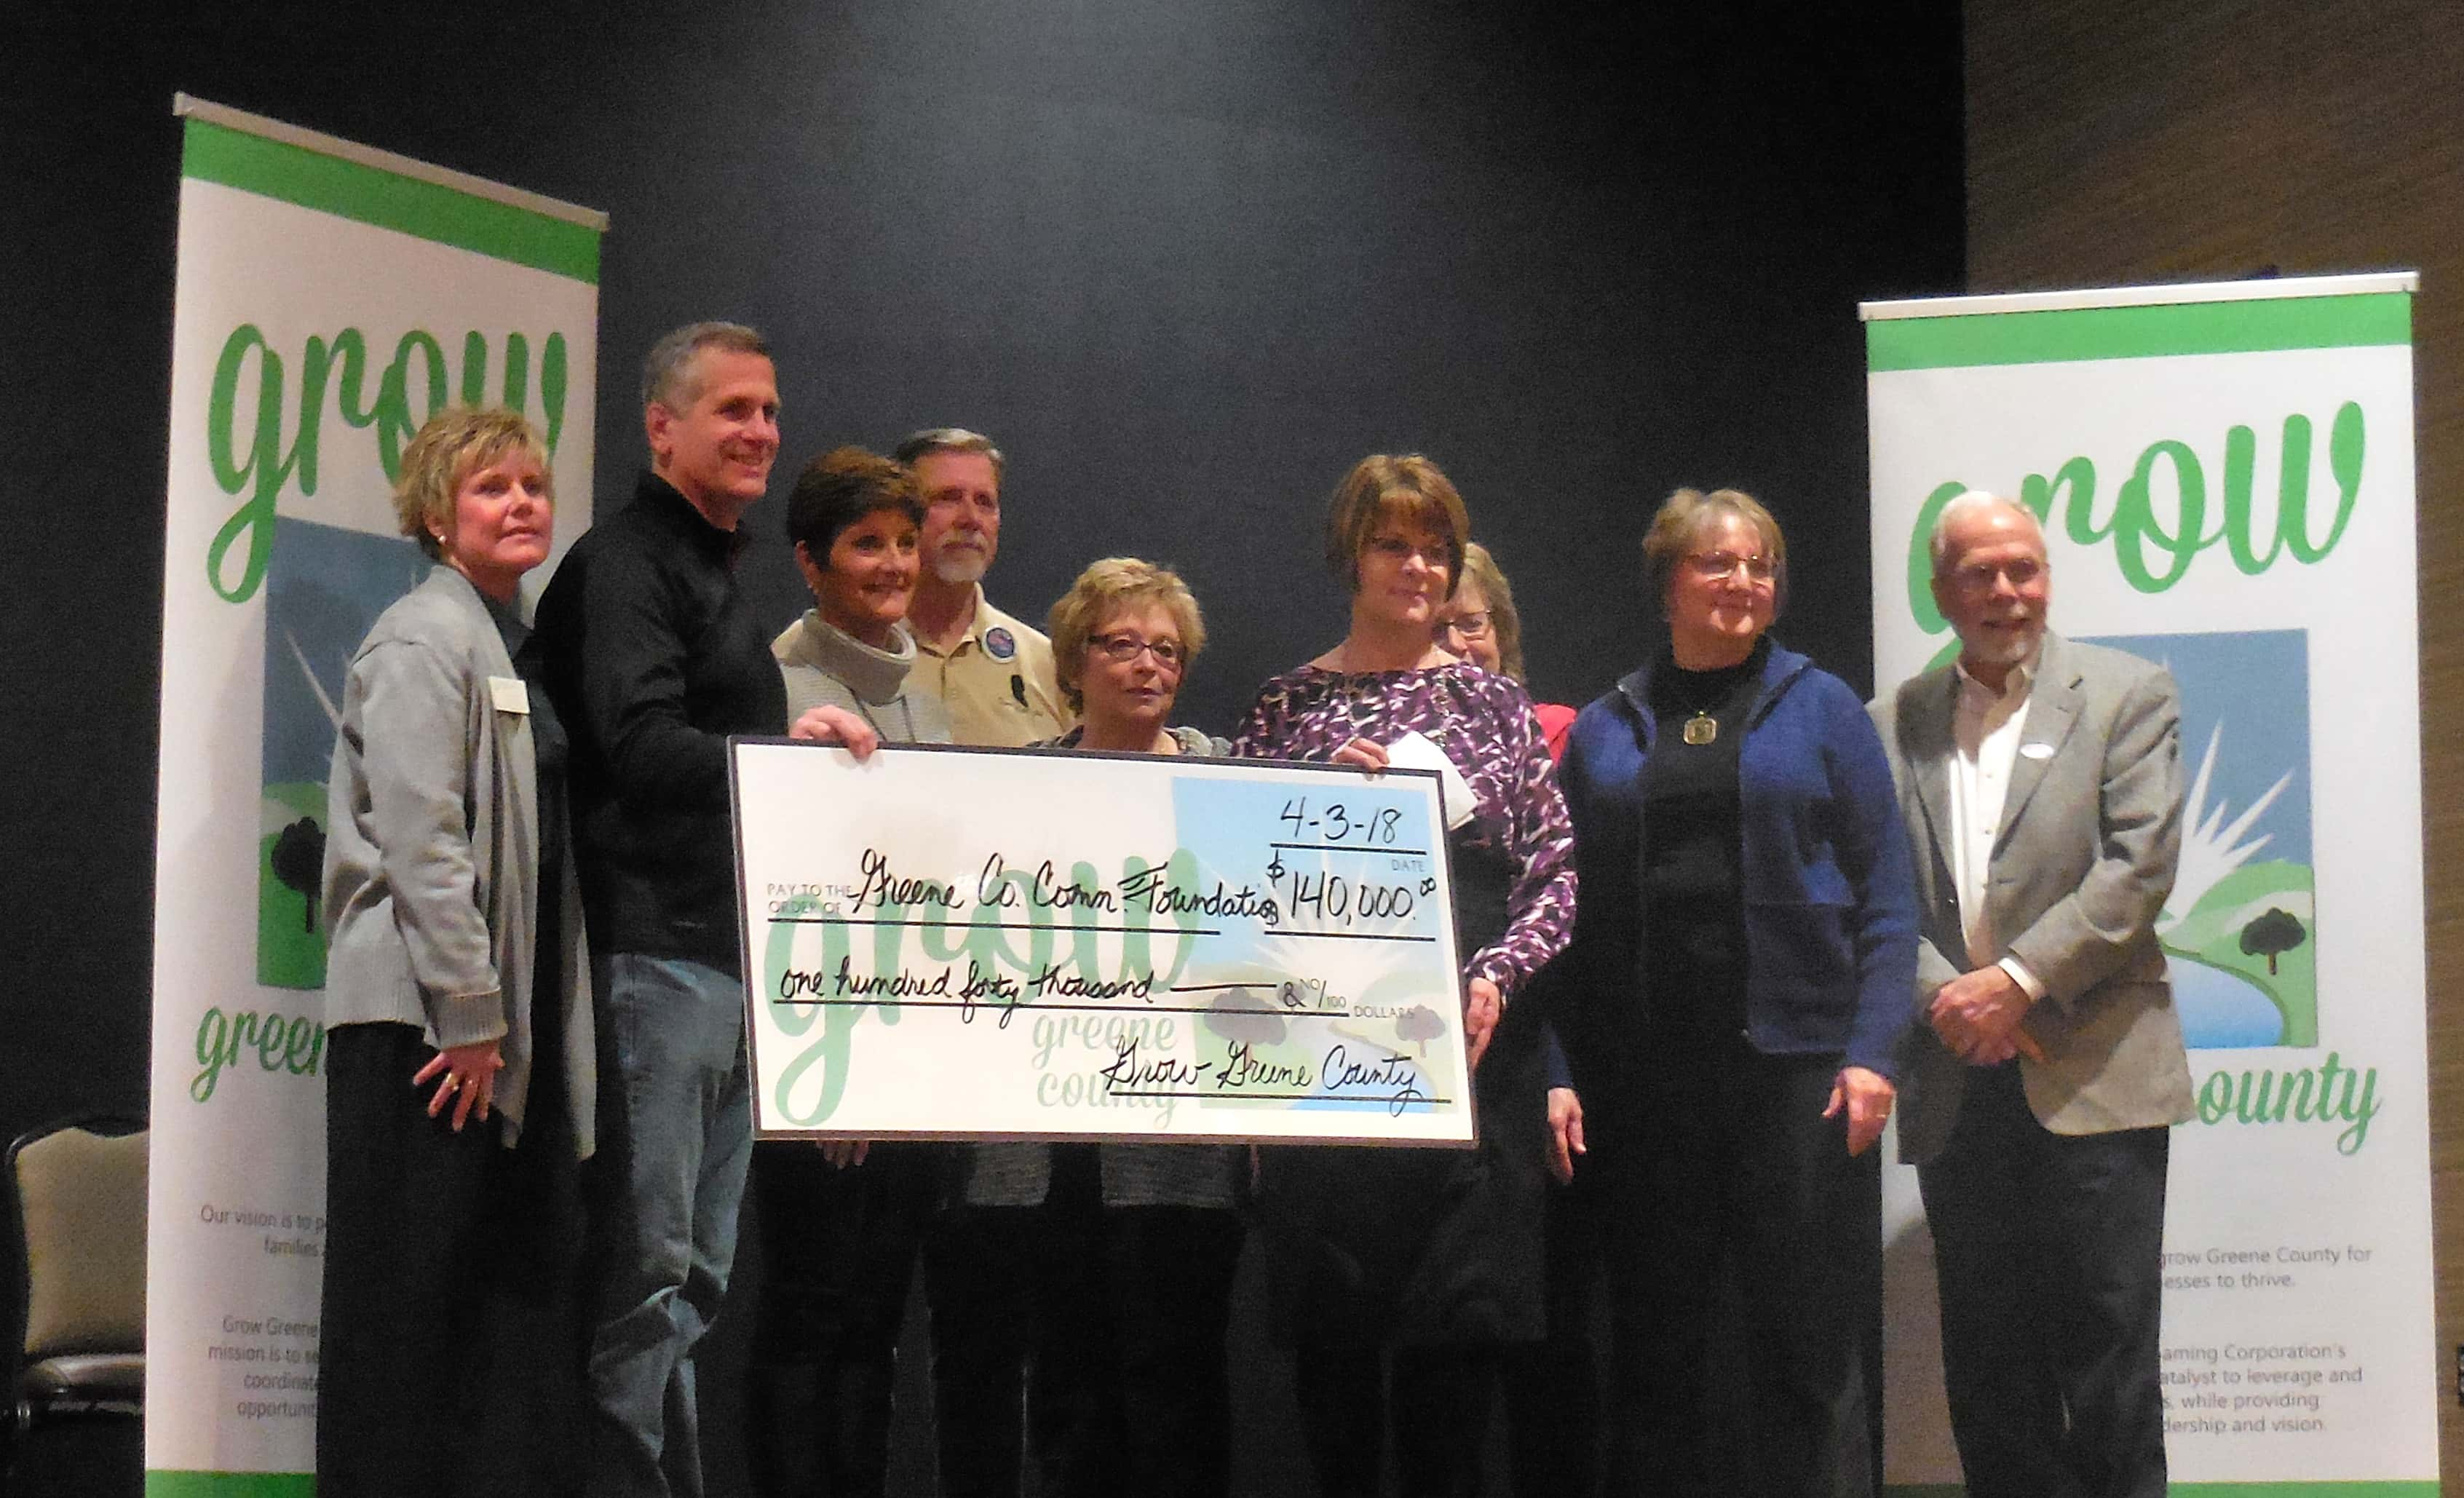 Greene County Community Foundation Grant Ceremony is Monday